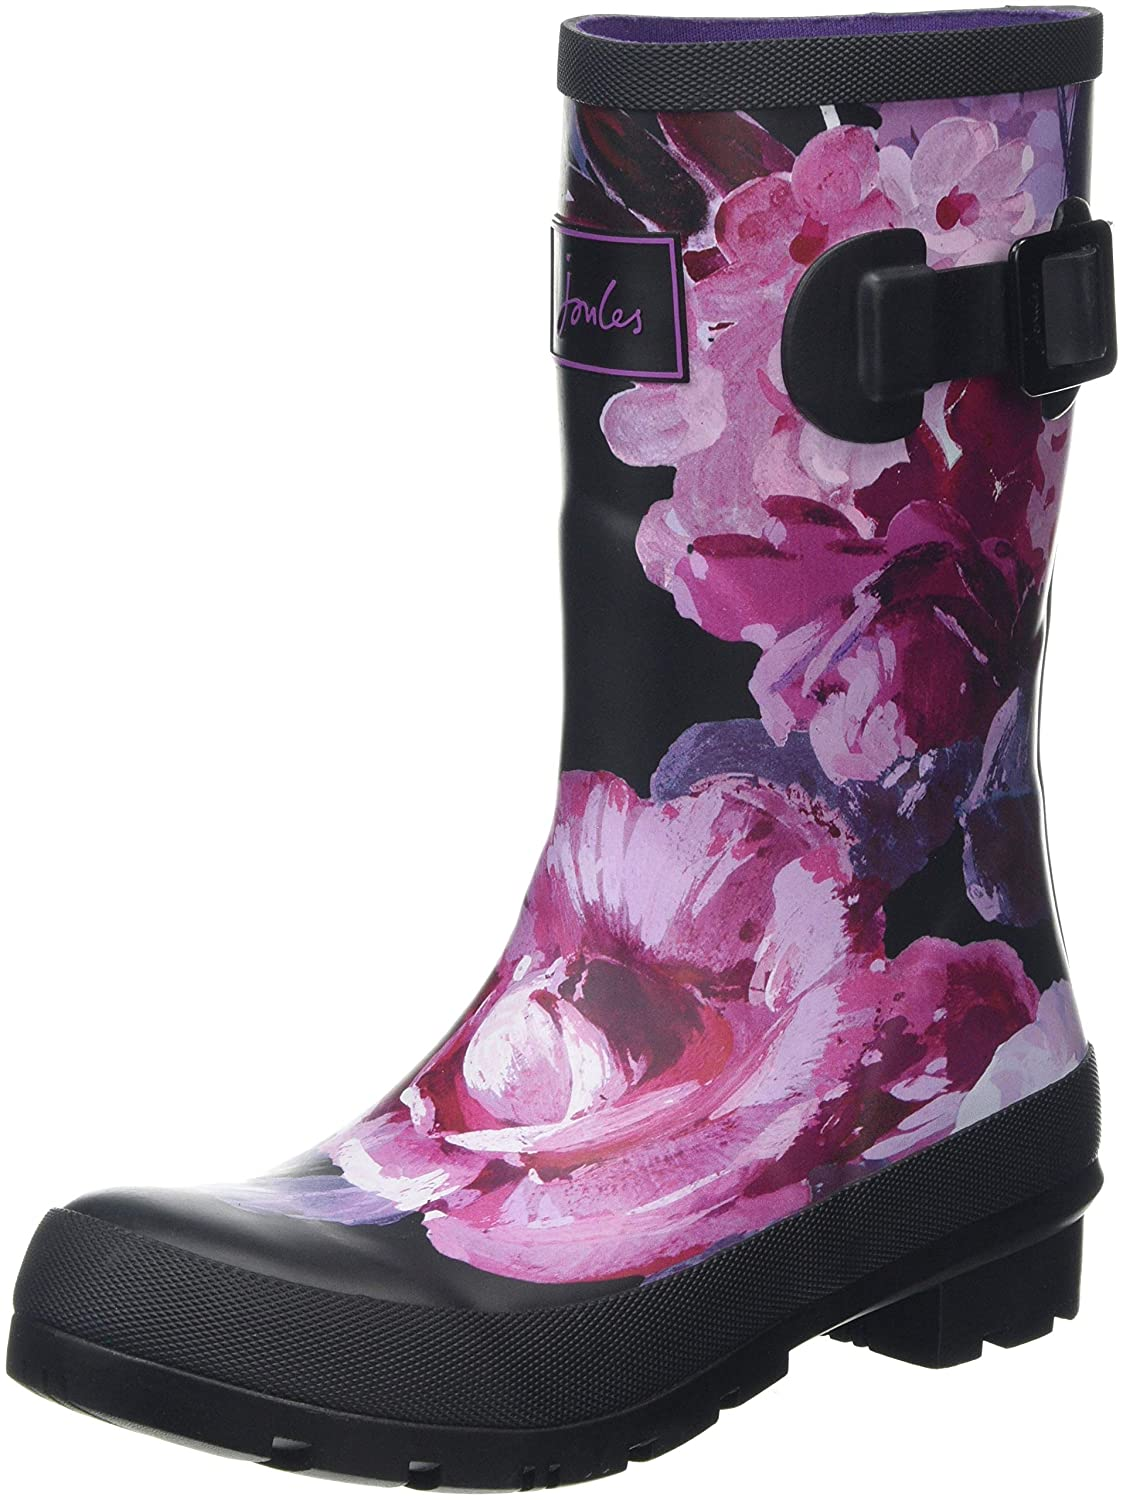 Black Winter Floral Joules Women's Molly Welly Rain Boot